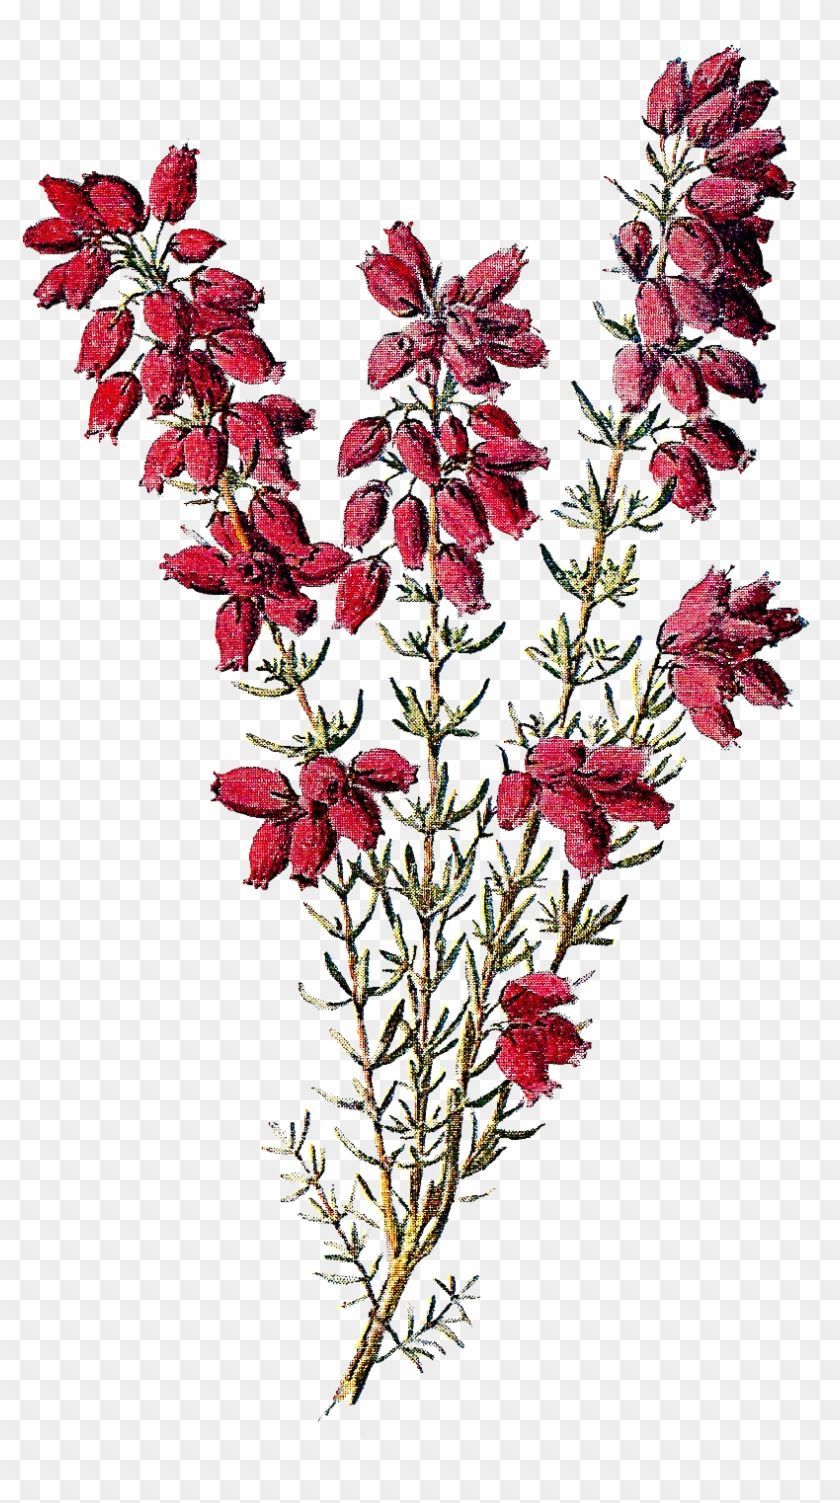 Stock Wildflower Image Heather - Heather Flower Png #290321